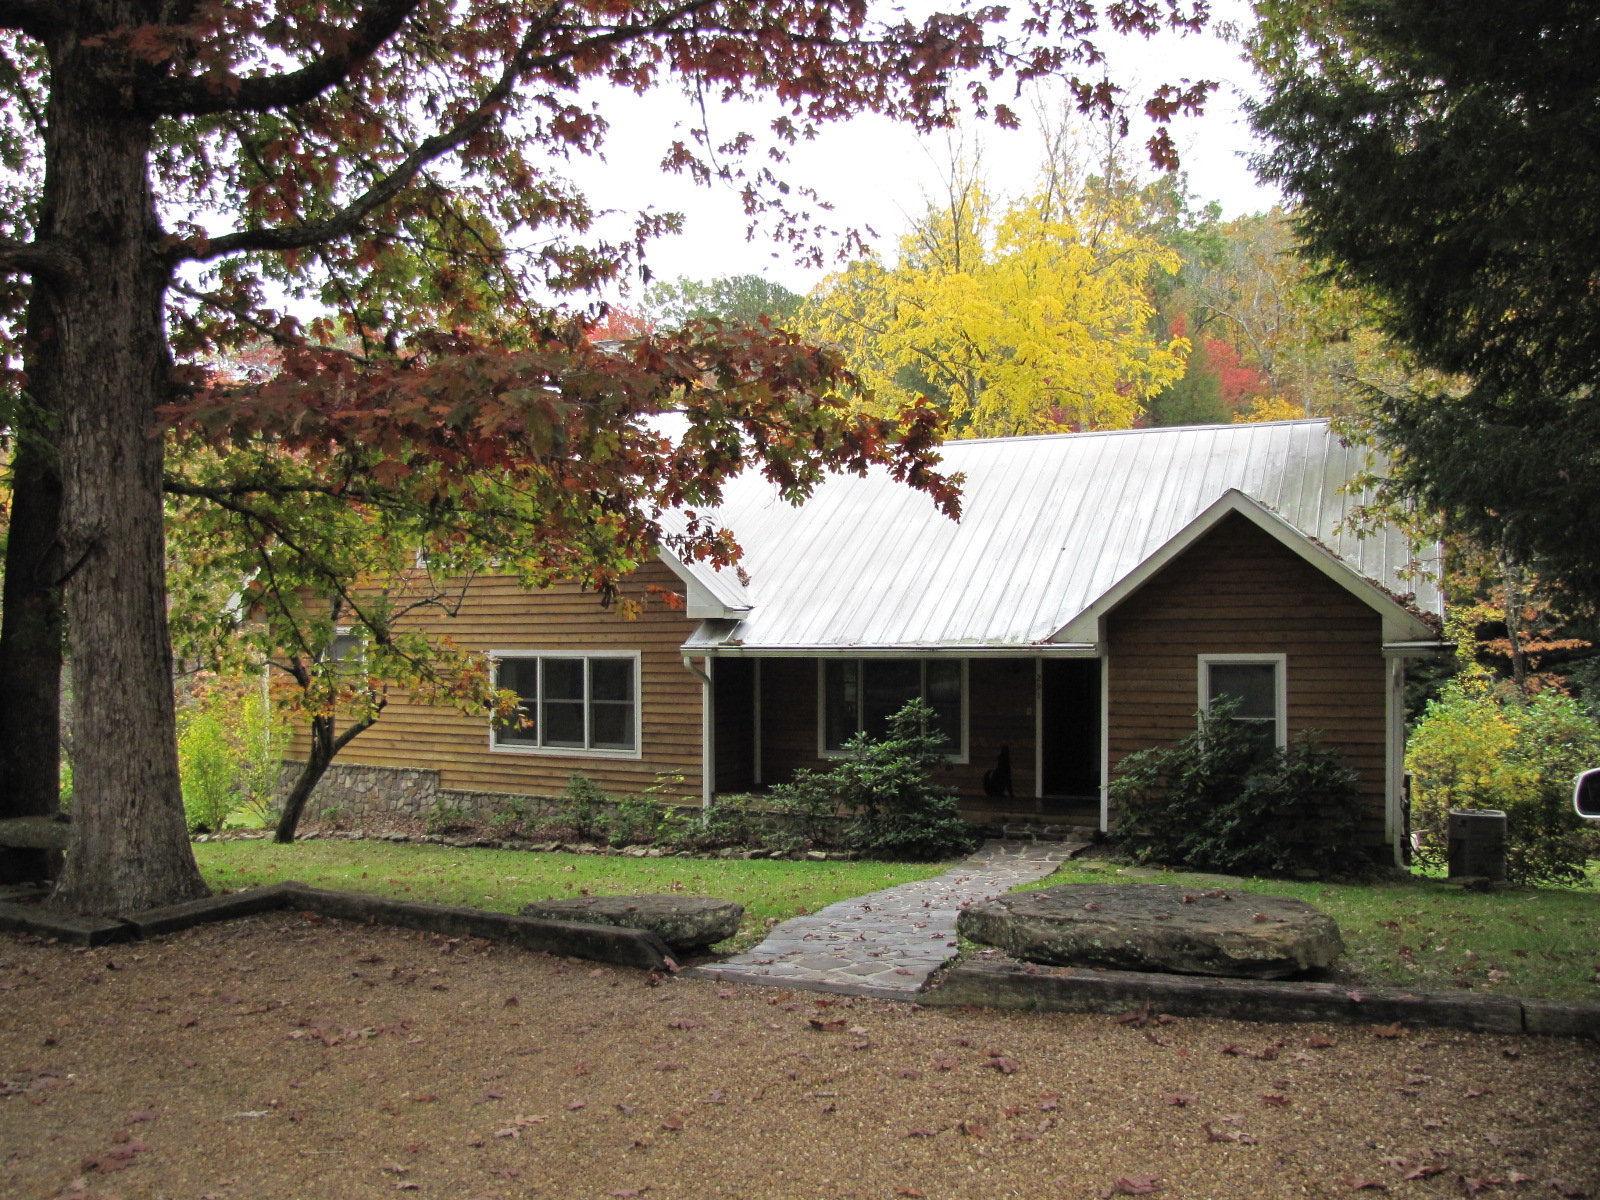 chattanooga southside rental near mountain lookout cabin vacation fawn retreat rising cabins rentals find of